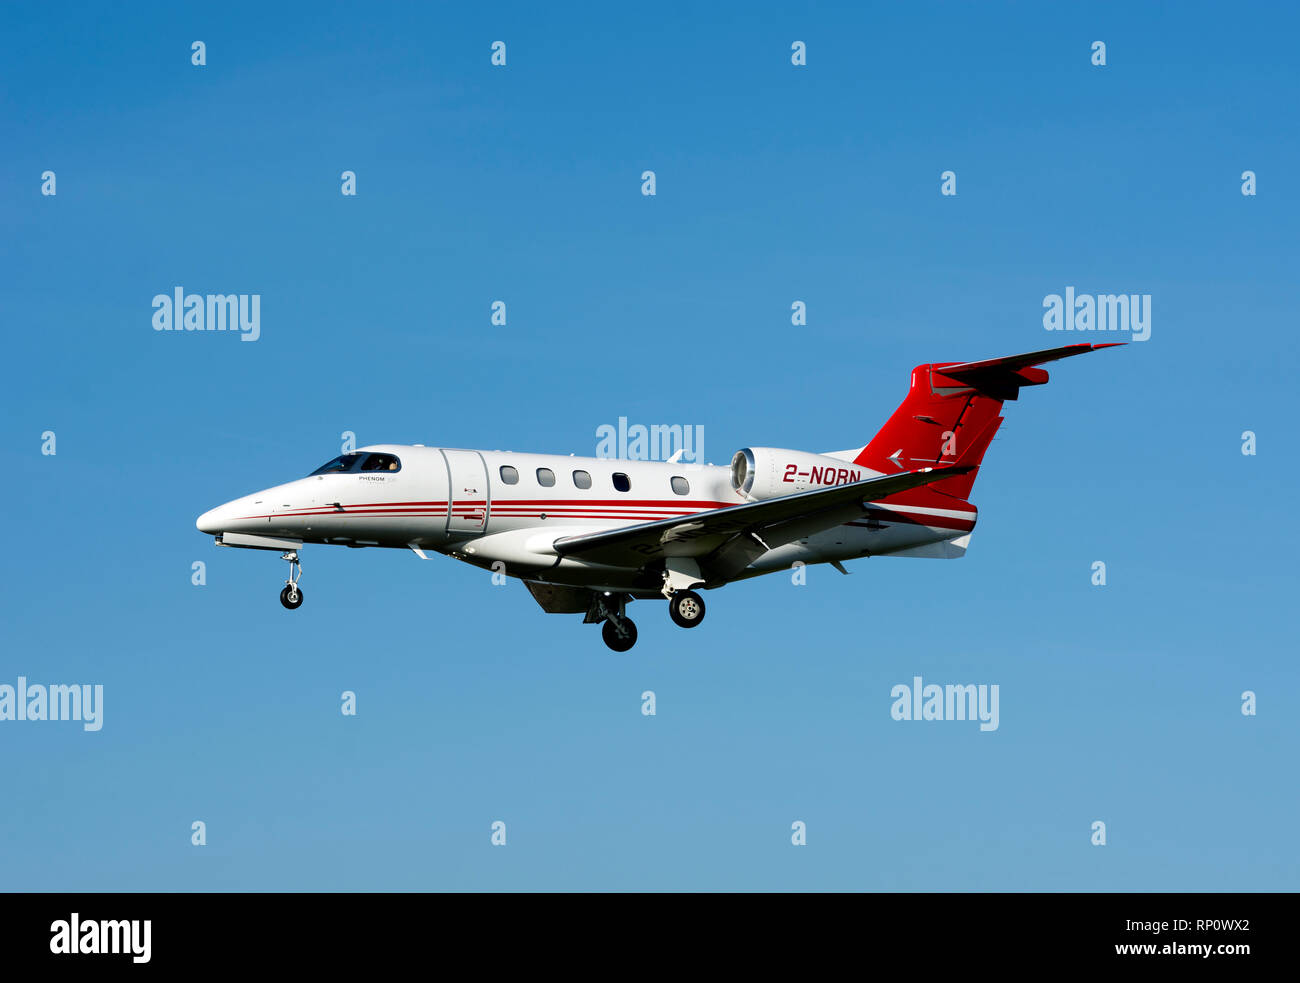 Embraer Phenom 300 at Wellesbourne Airfield, Warwickshire, UK (2-NORN) - Stock Image